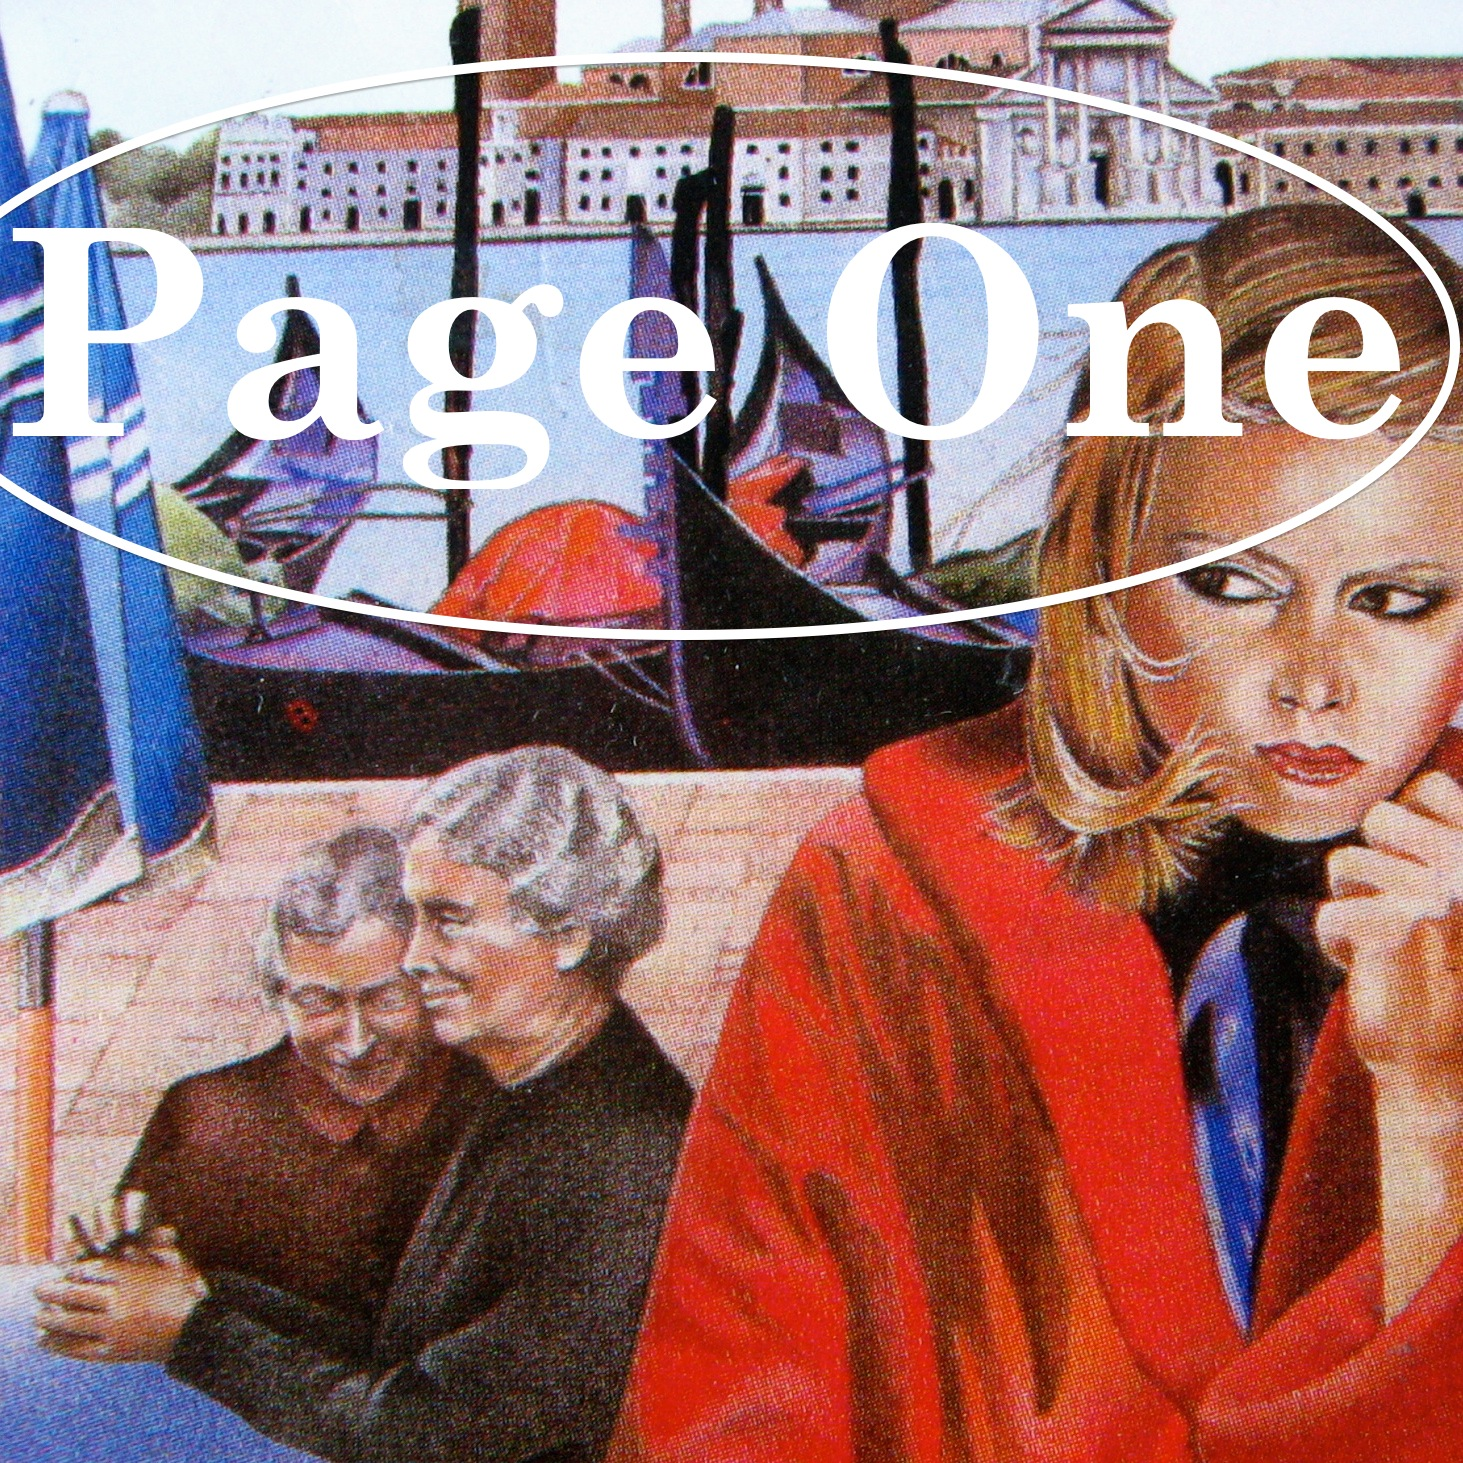 Episode image is a detail from the cover of Not After Midnight by Daphne Du Maurier, published in 1981 in Penguin Books; cover illustration by Dave and Sue Holmes.